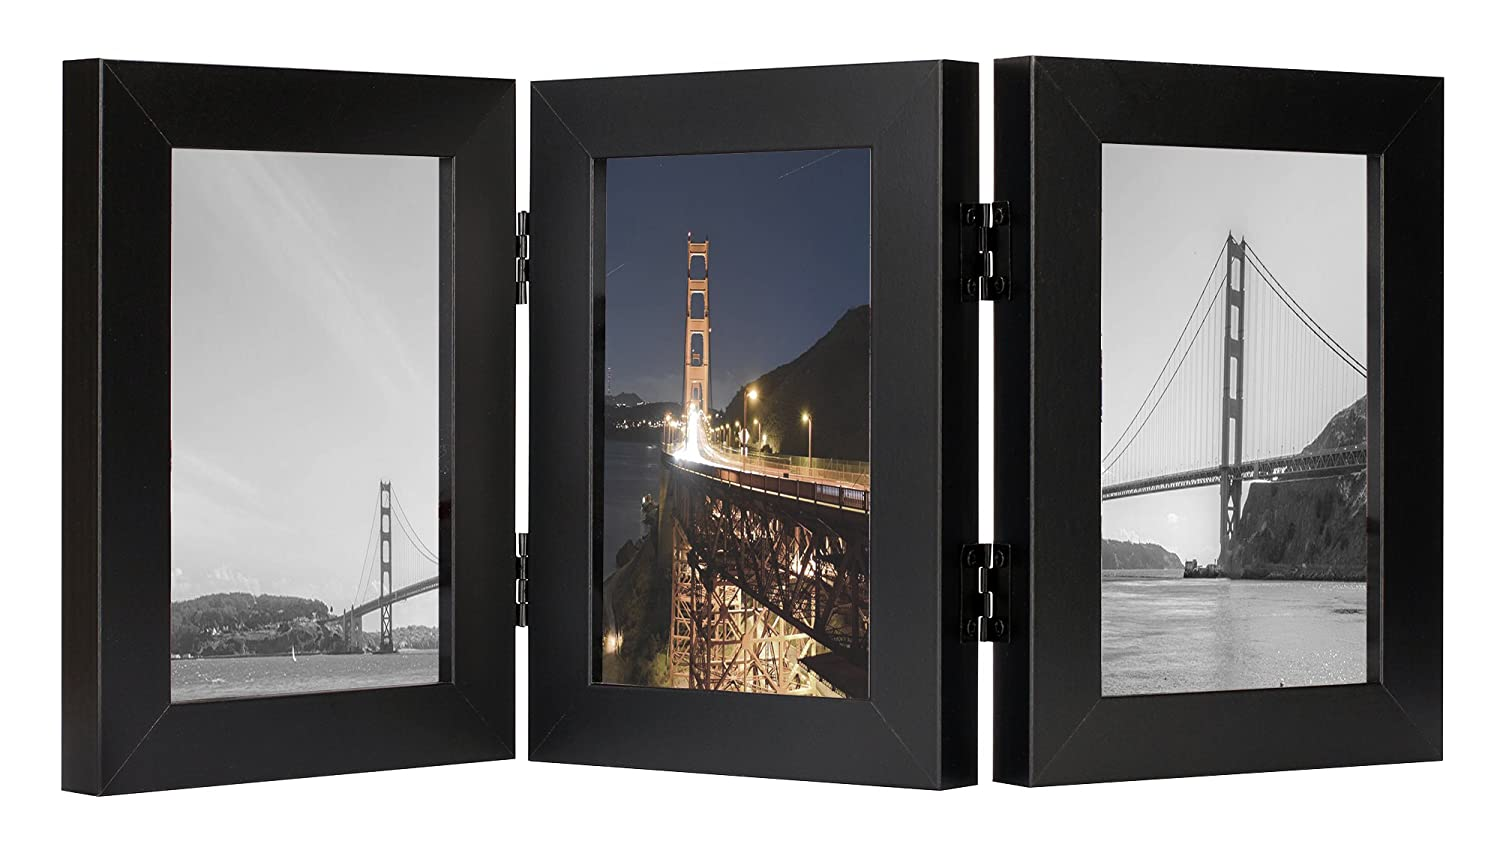 Frametory, 4x6 Inch Triple Hinged Black Picture Frame - Made to Display Three 4x6 Inch Pictures, Stands Vertically on Desktop or Table Top, Real Glass Front